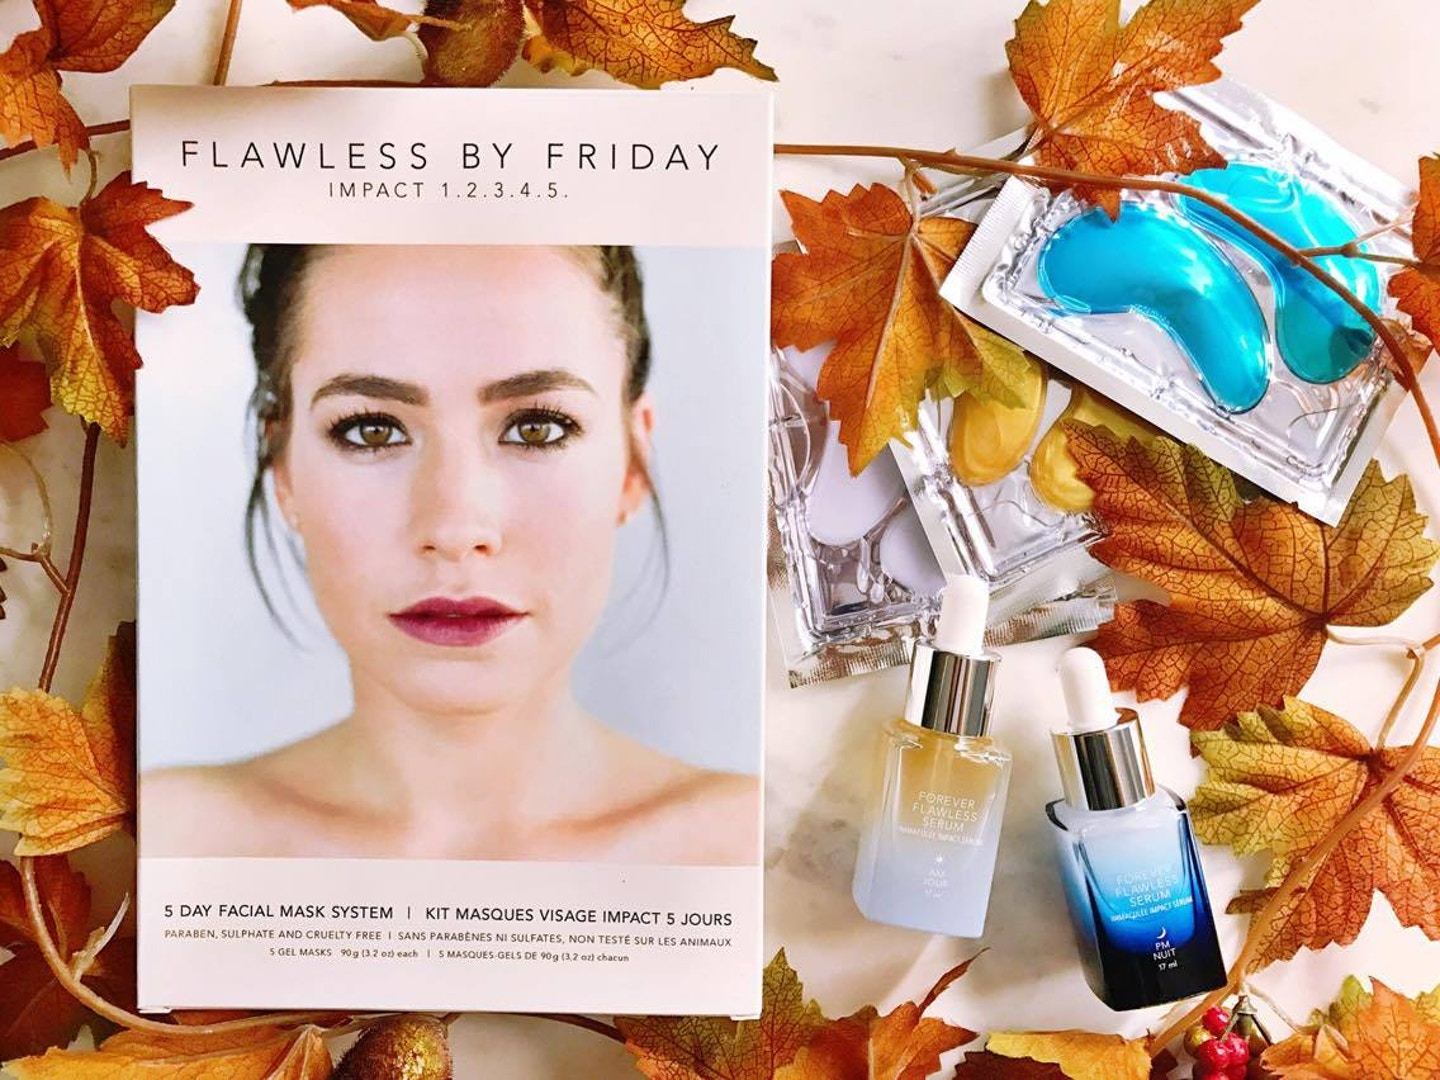 flawless by friday review and giveaway